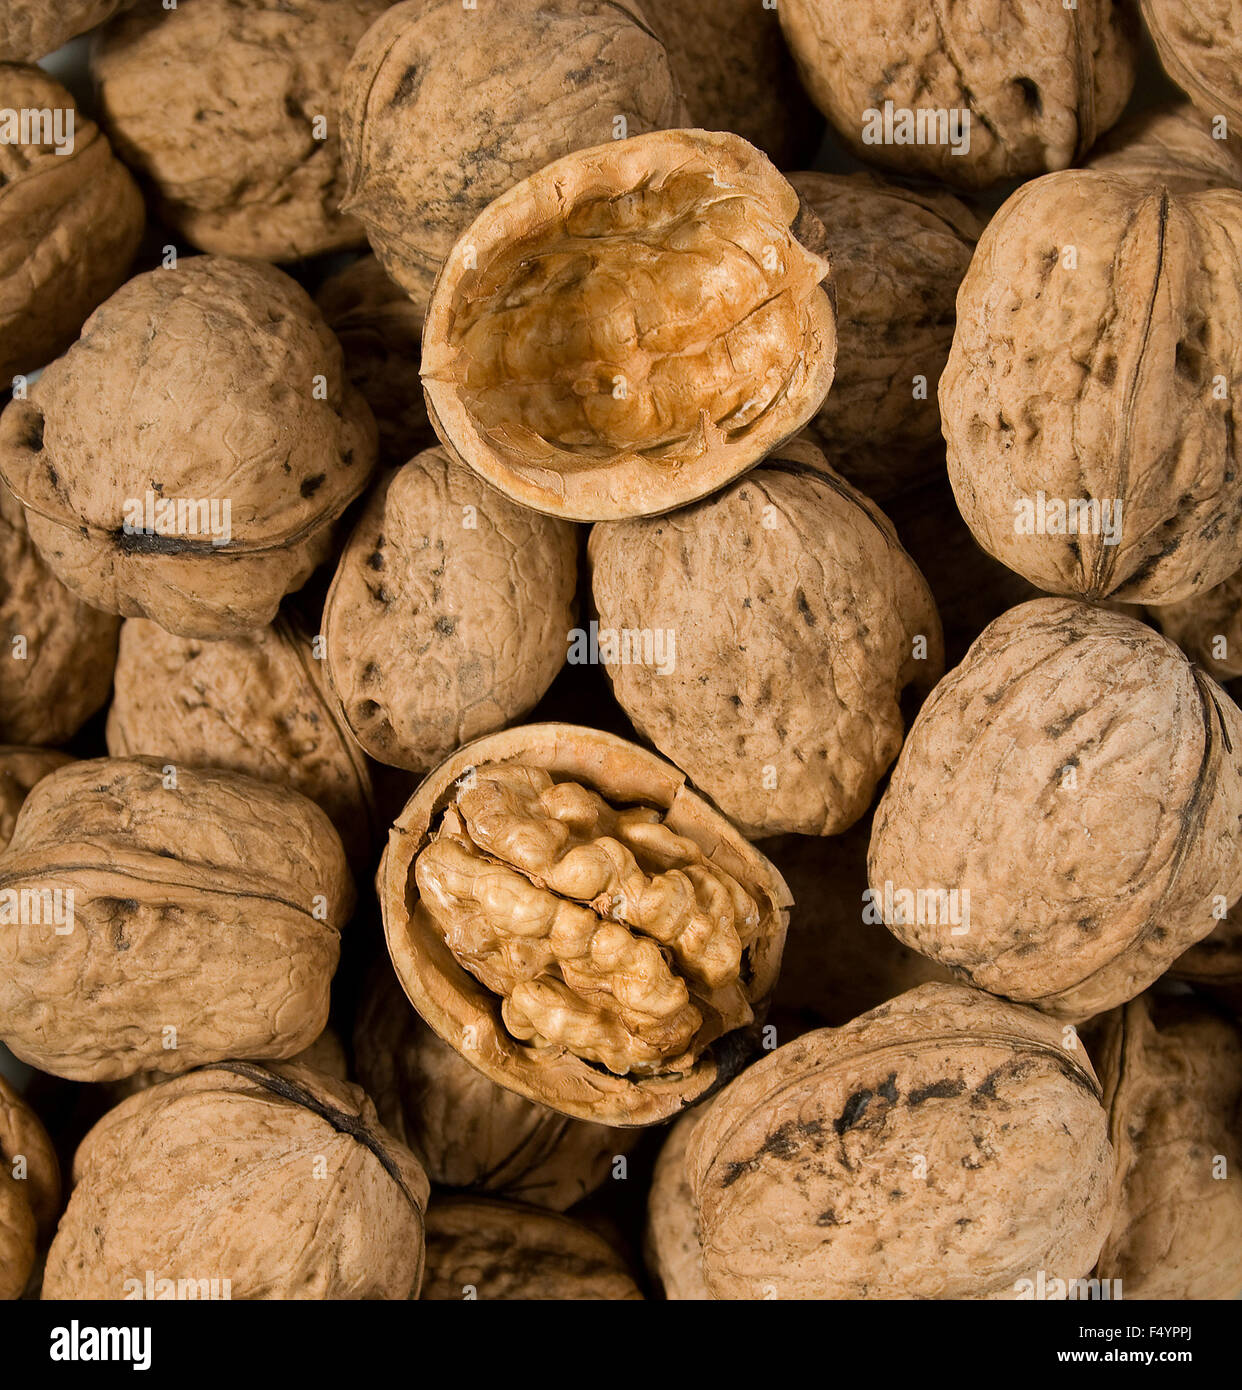 One open walnut amid other whole walnuts - Stock Image